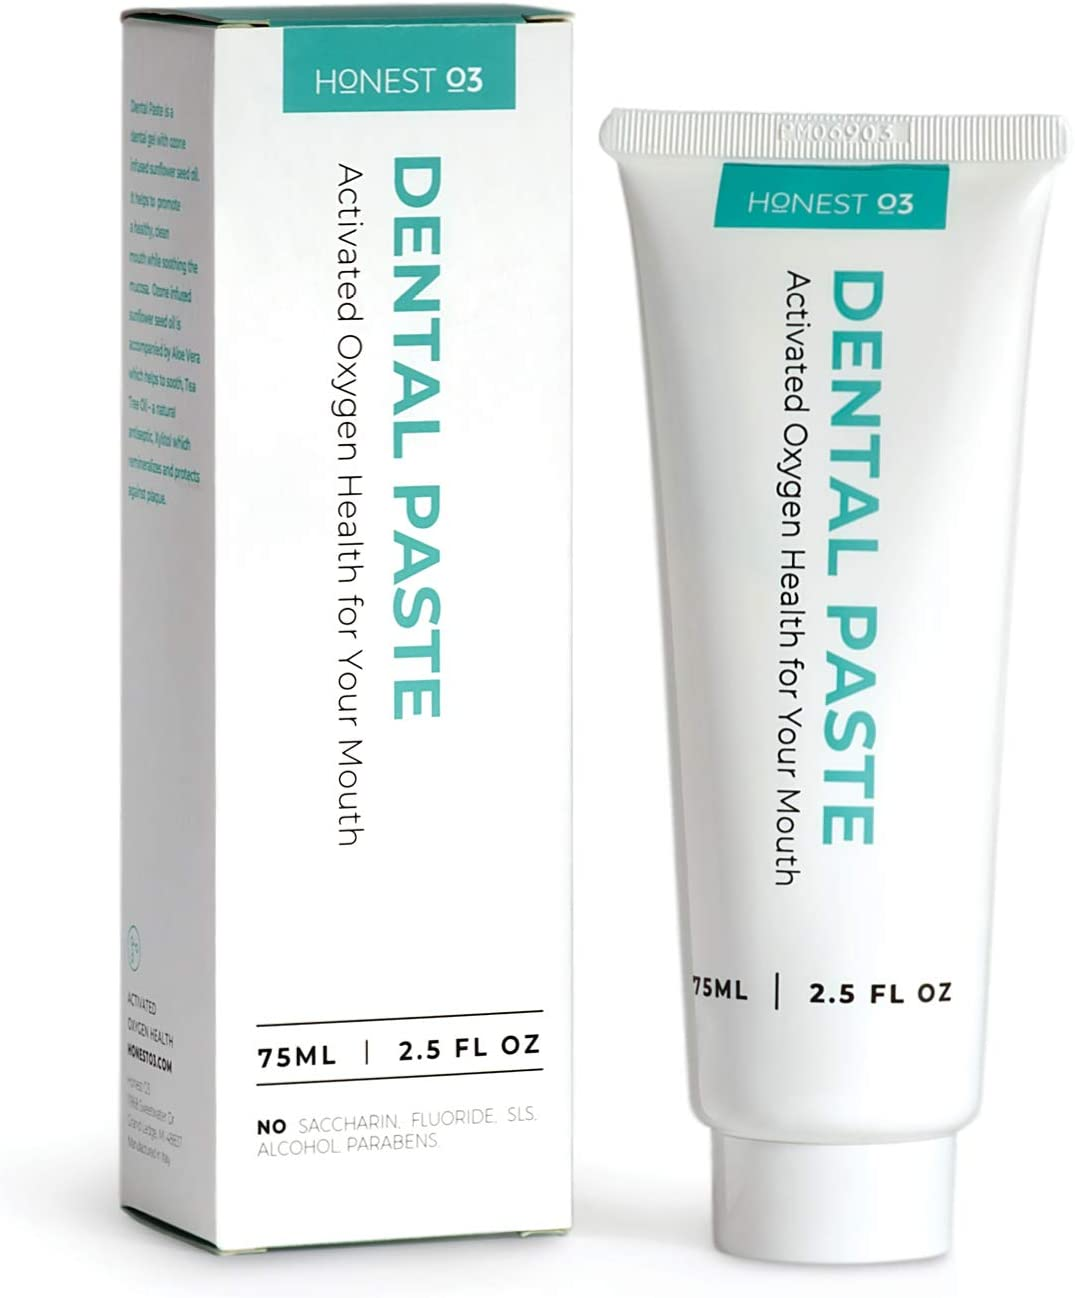 Honest O3 Dental Paste Ozone trend rank Flouride-Fre Infused Toothpaste Oil Great interest